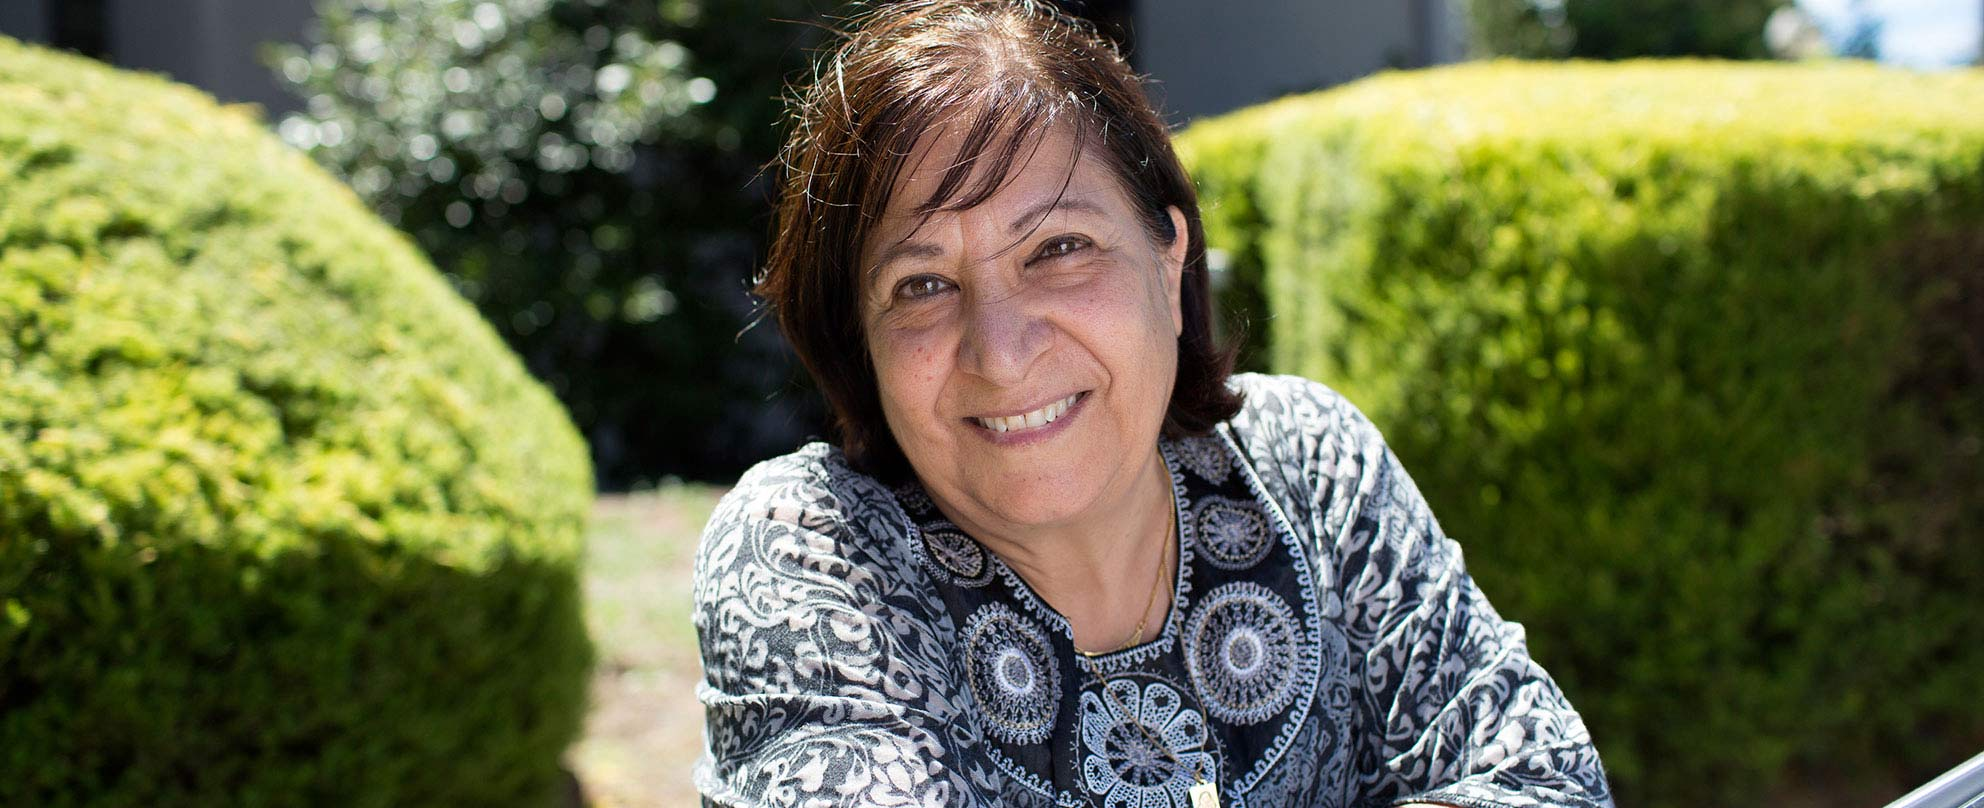 A smiling middle-aged woman sitting in a garden outside in the sun